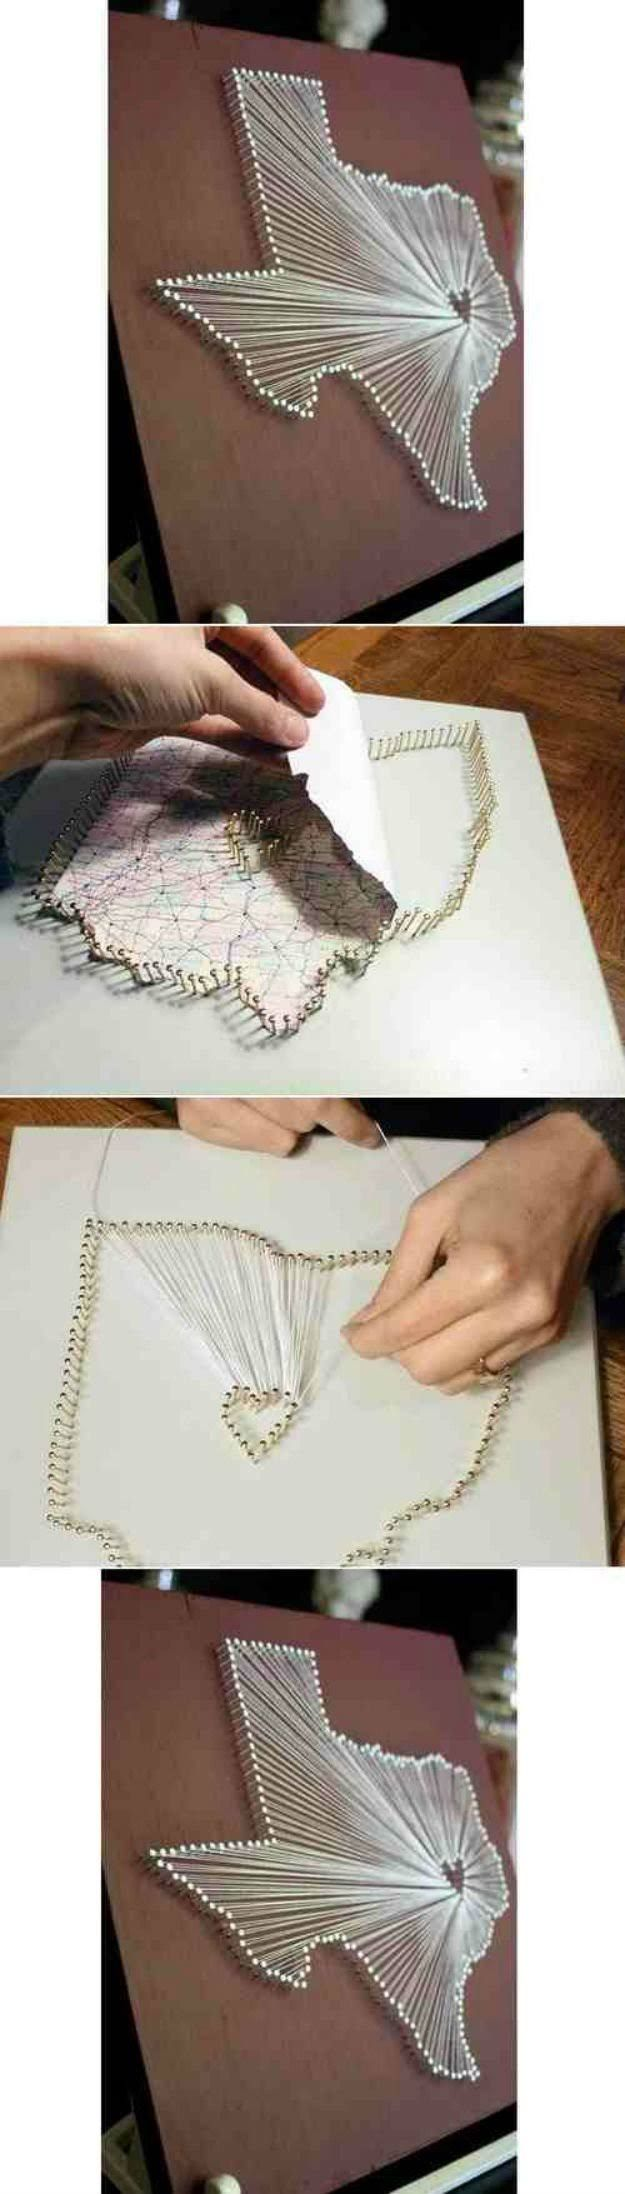 Christmas gifts christmas gifts cool diy projects craft ideas christmas gifts christmas gifts cool diy projects craft ideas diy christmas gifts solutioingenieria Images